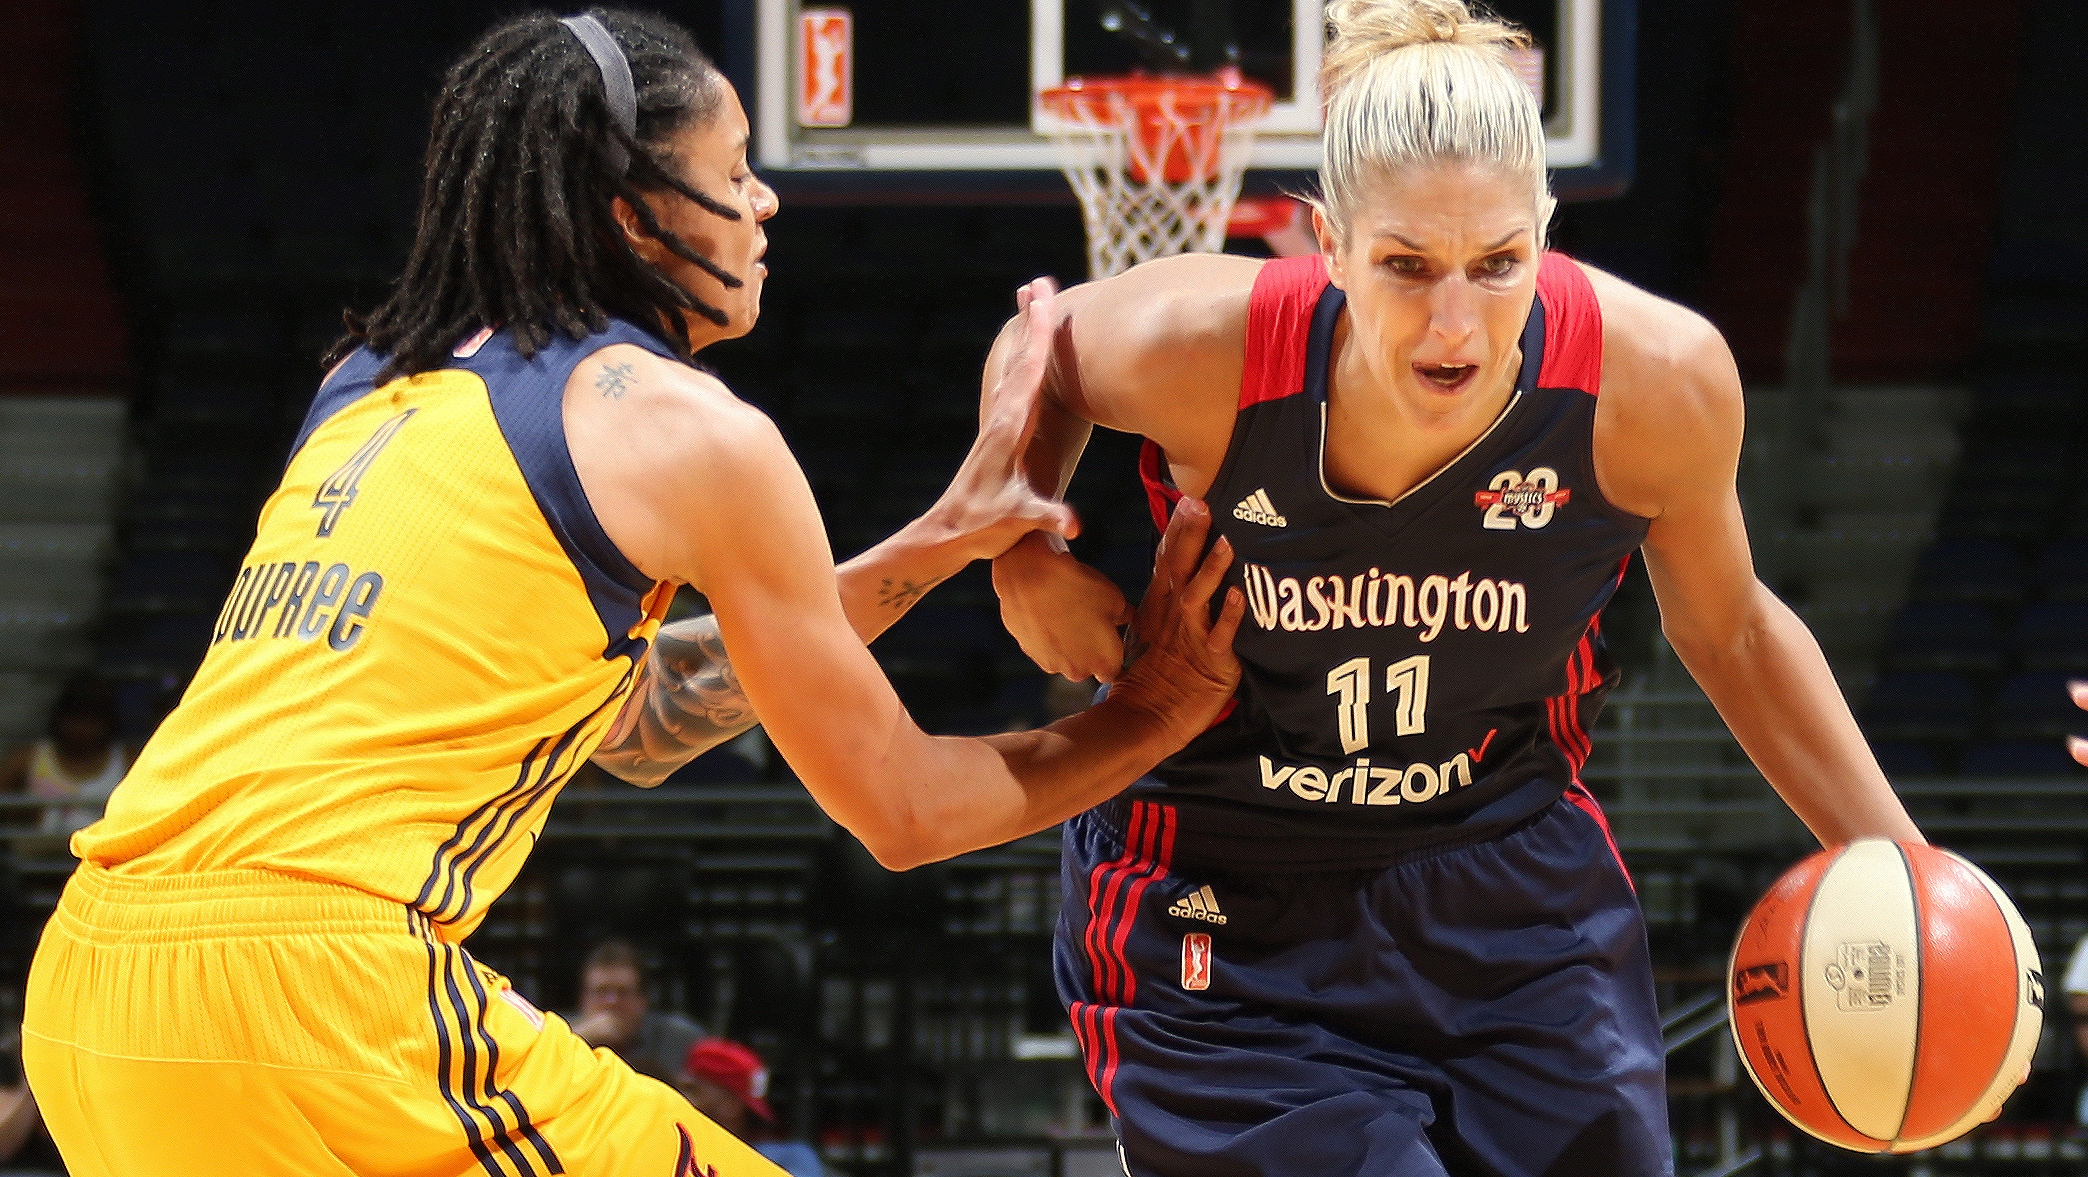 Elena Delle Donne and Minnesota Lynx have top jersey and team merchandise sales for 2017 WNBA season